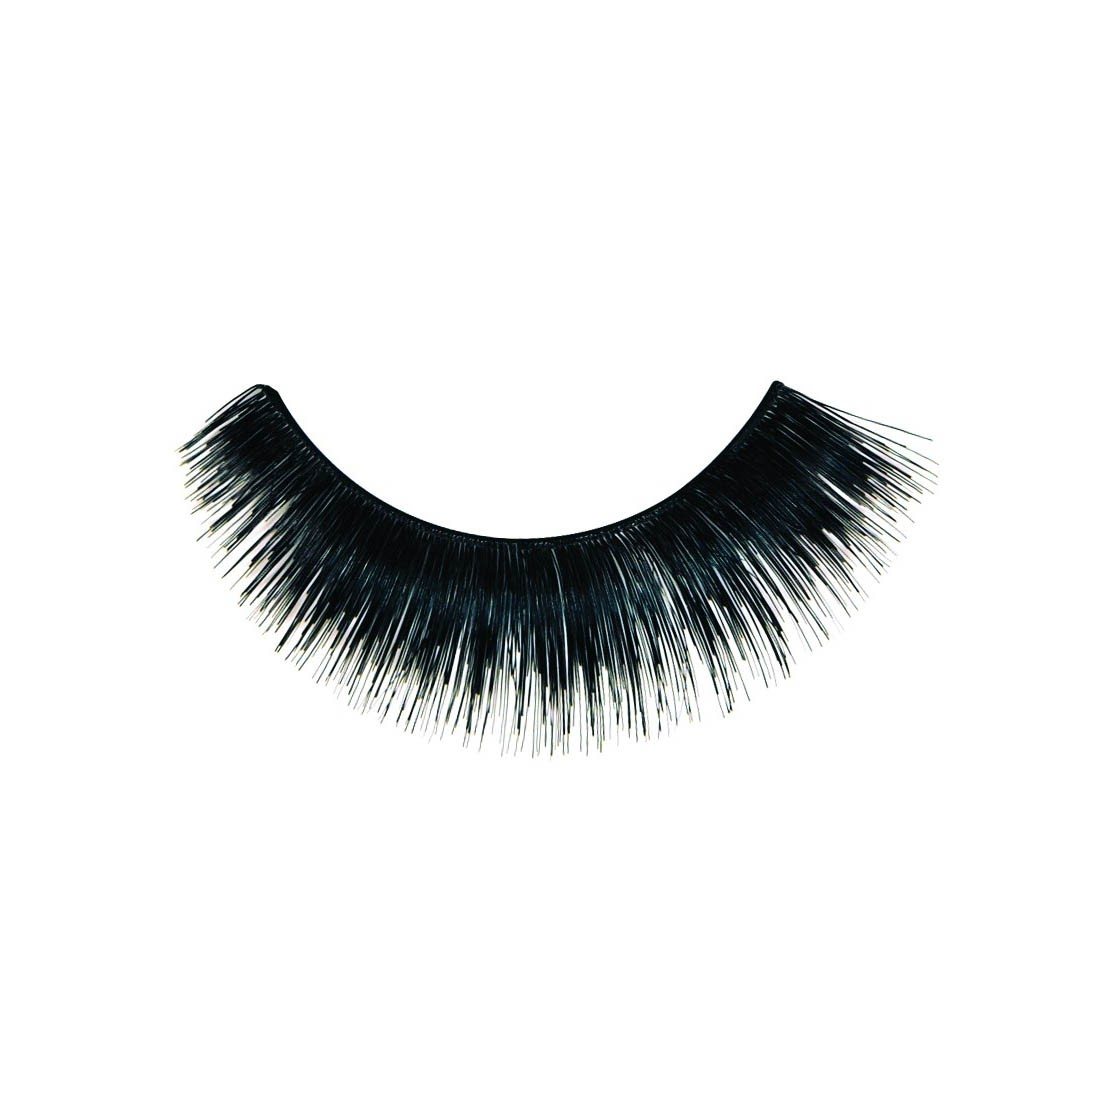 4653333fff4 Red Cherry Lashes False Eyelashes - Jewels #79 - Drama Queen ...